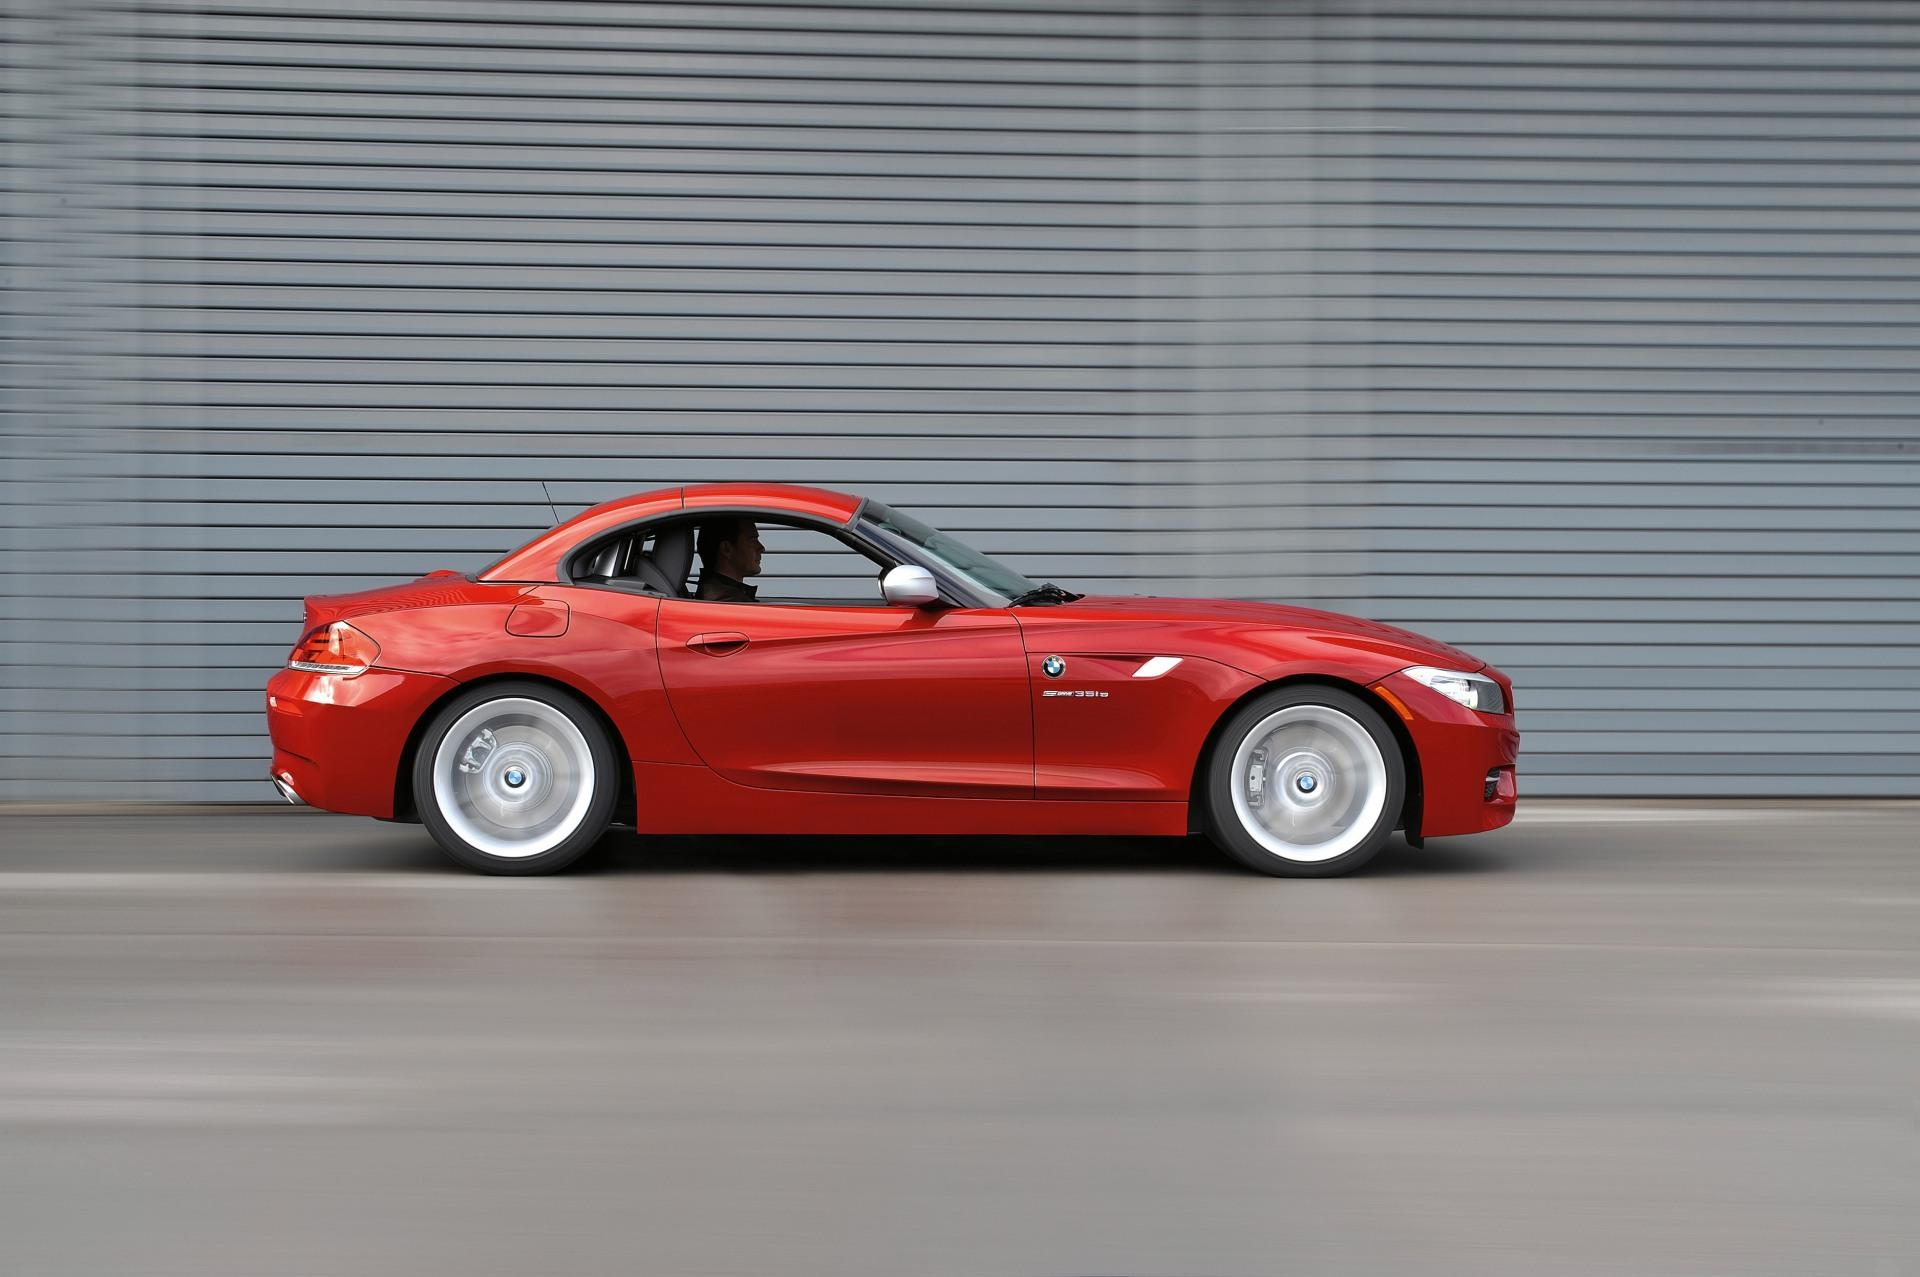 2010 BMW E89 Z4 sDrive35is - conceptcarz.com